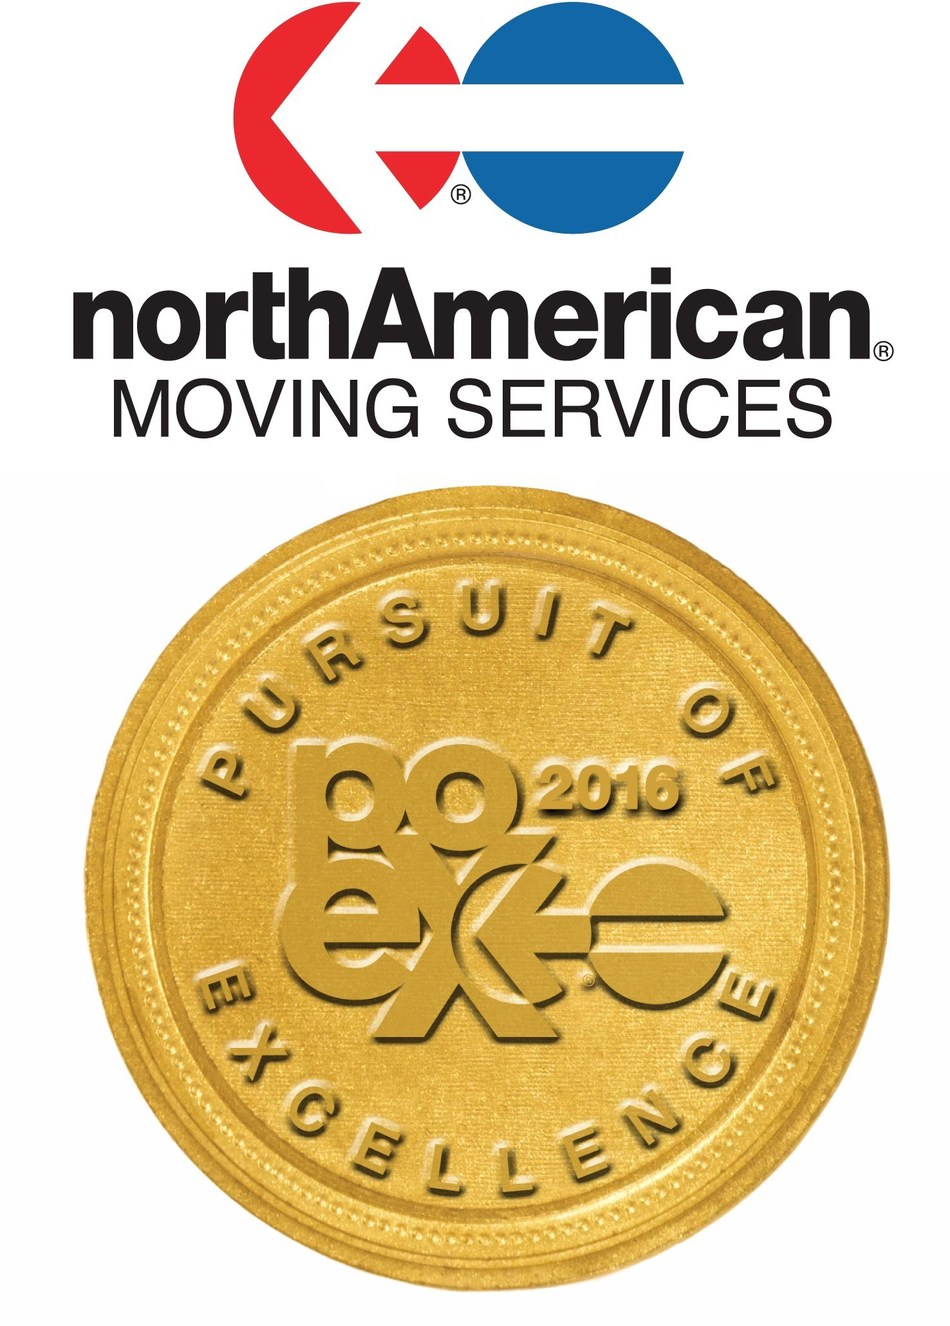 northAmerican® Van Lines proudly announces the 2016 Class of Pursuit of Excellence Winners. Pursuit of Excellence winners personify northAmerican's strong commitment to providing moving customers with a consistently exceptional level of service.